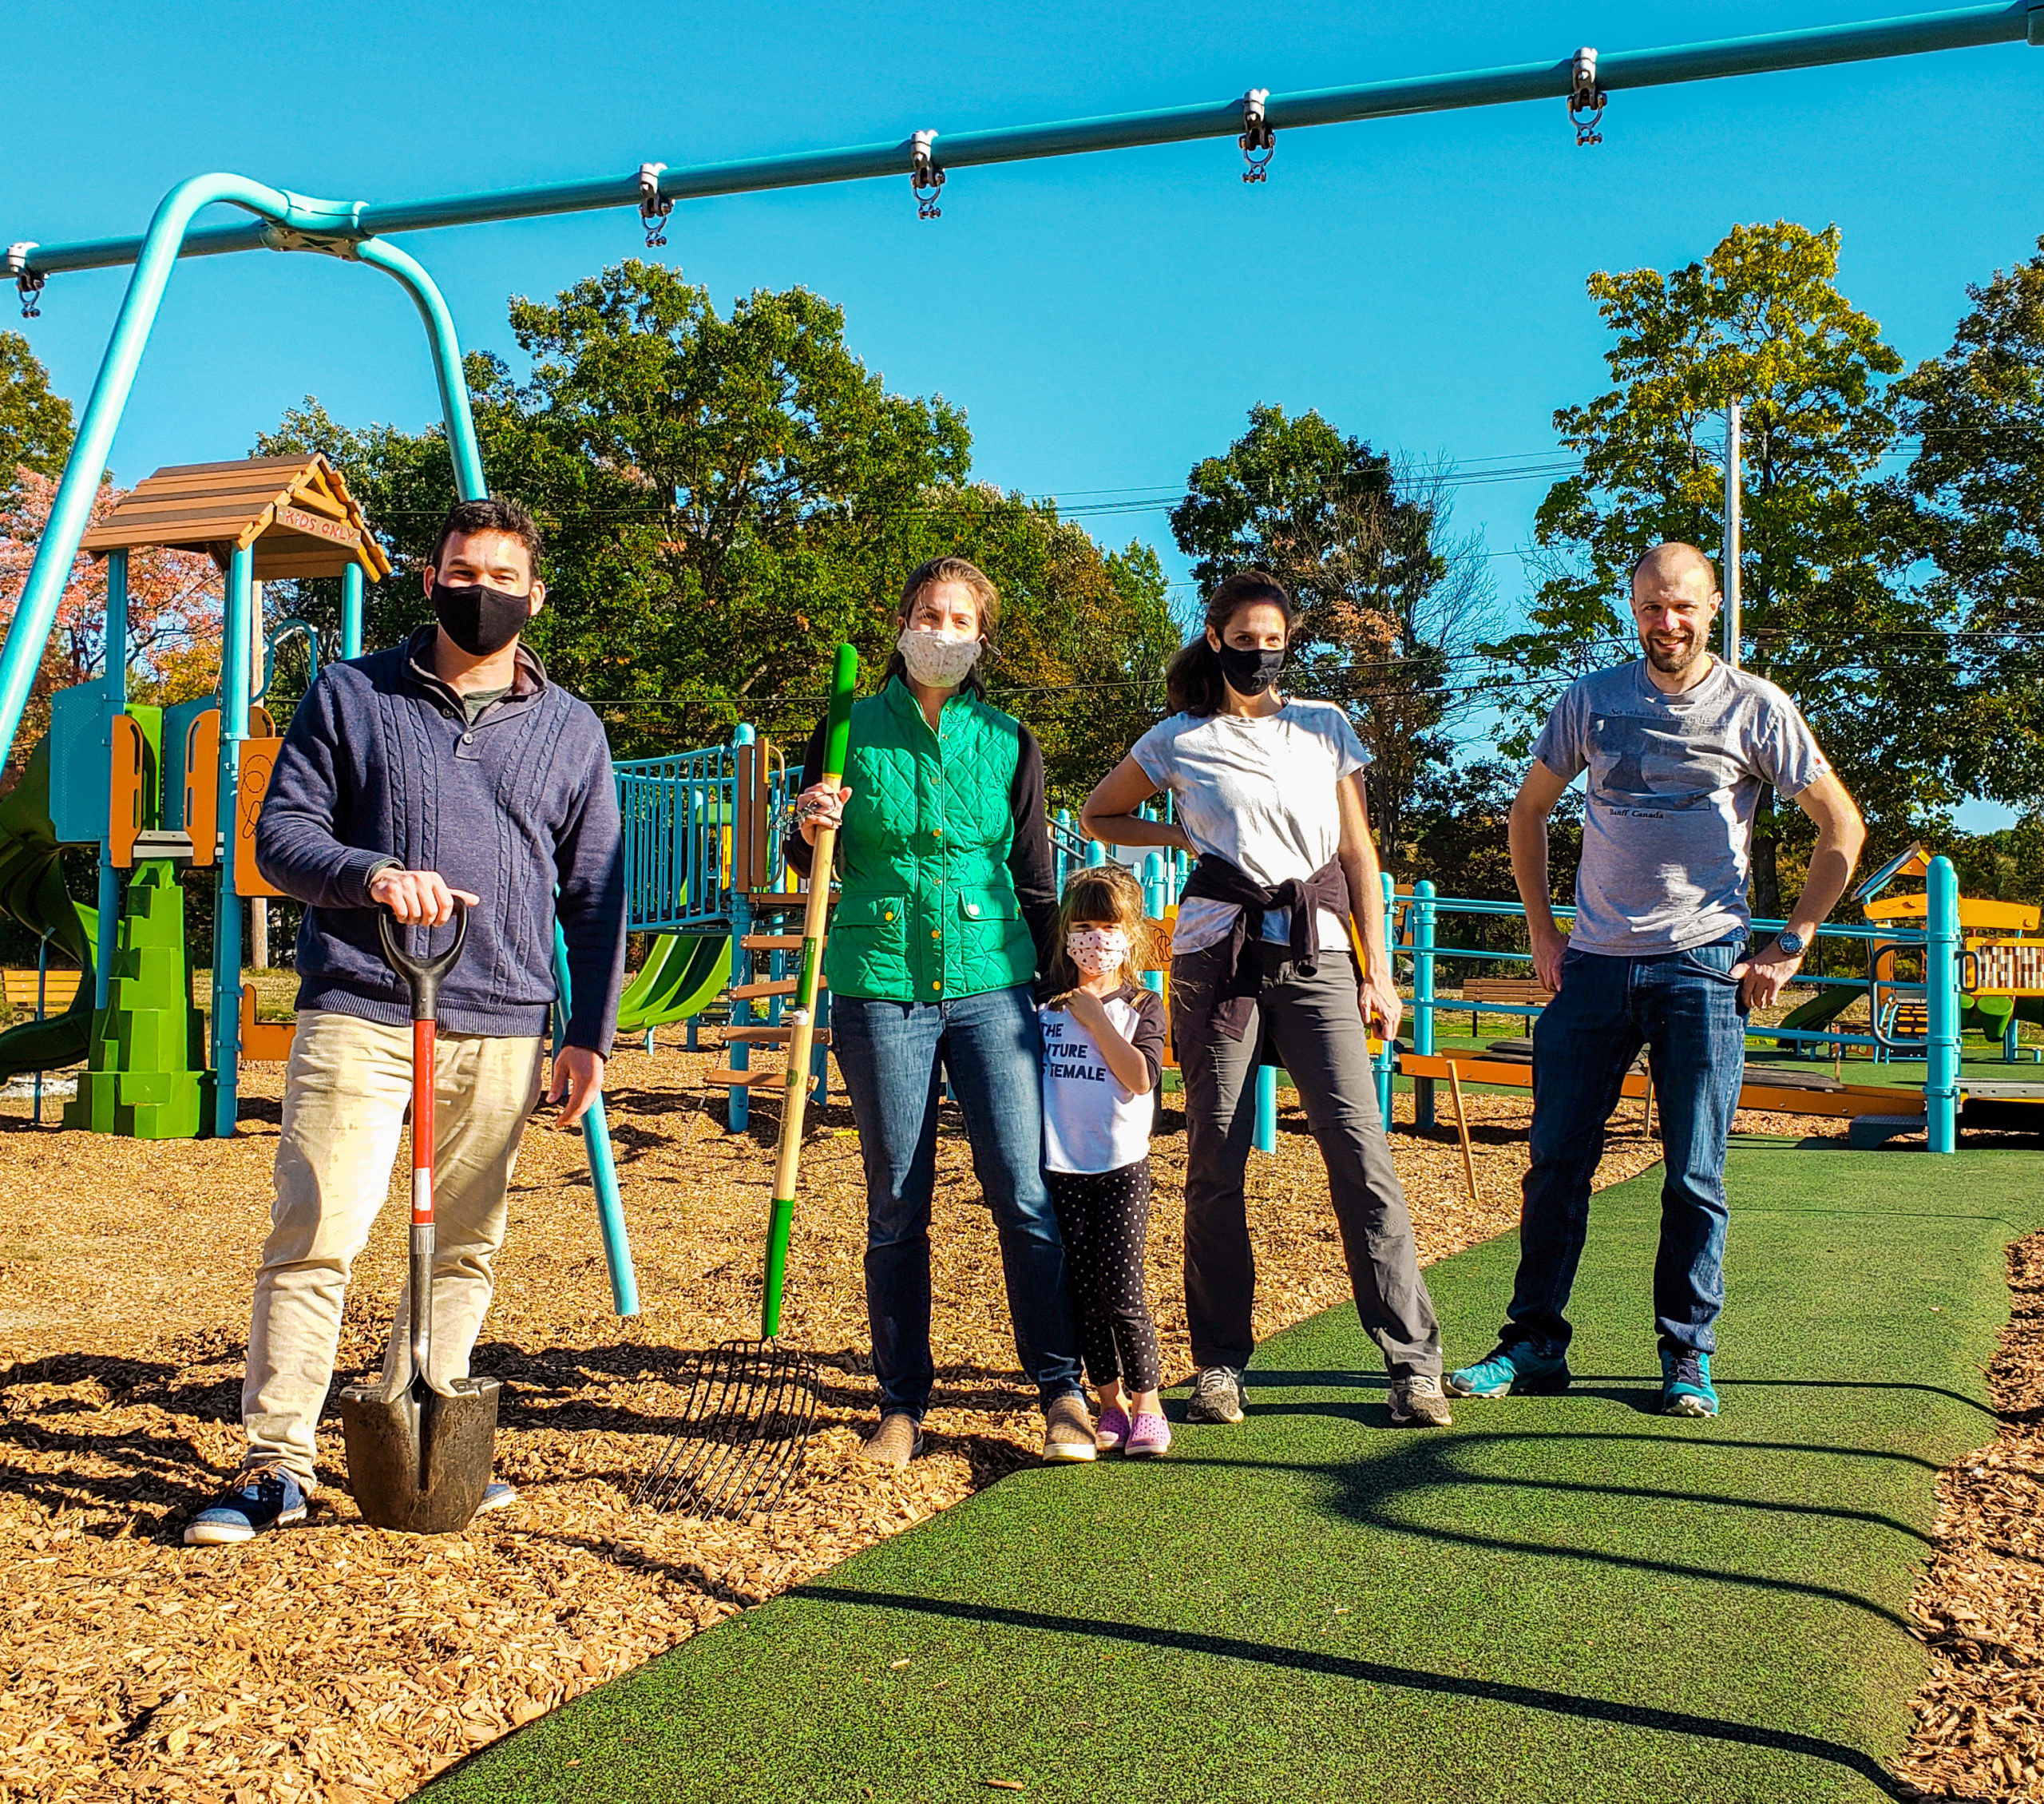 Rep. Sena helps local Acton families fill in the new Jones Playground in Acton, MA